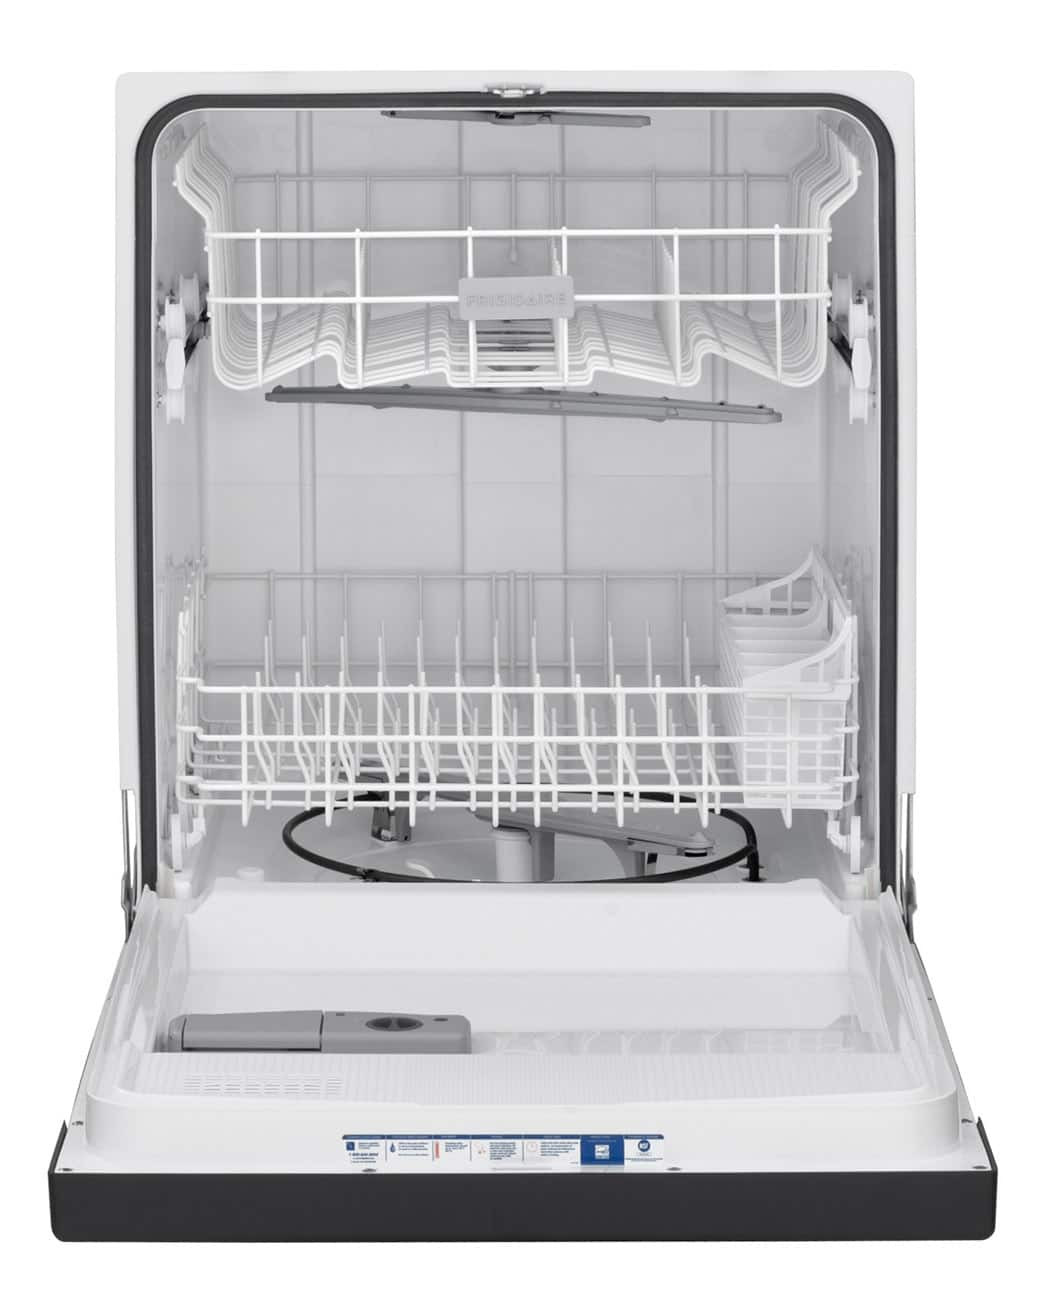 Dishwasher Review: Frigidaire 24-Inch Built-In Dishwasher FFBD2411NS |  Angie's List